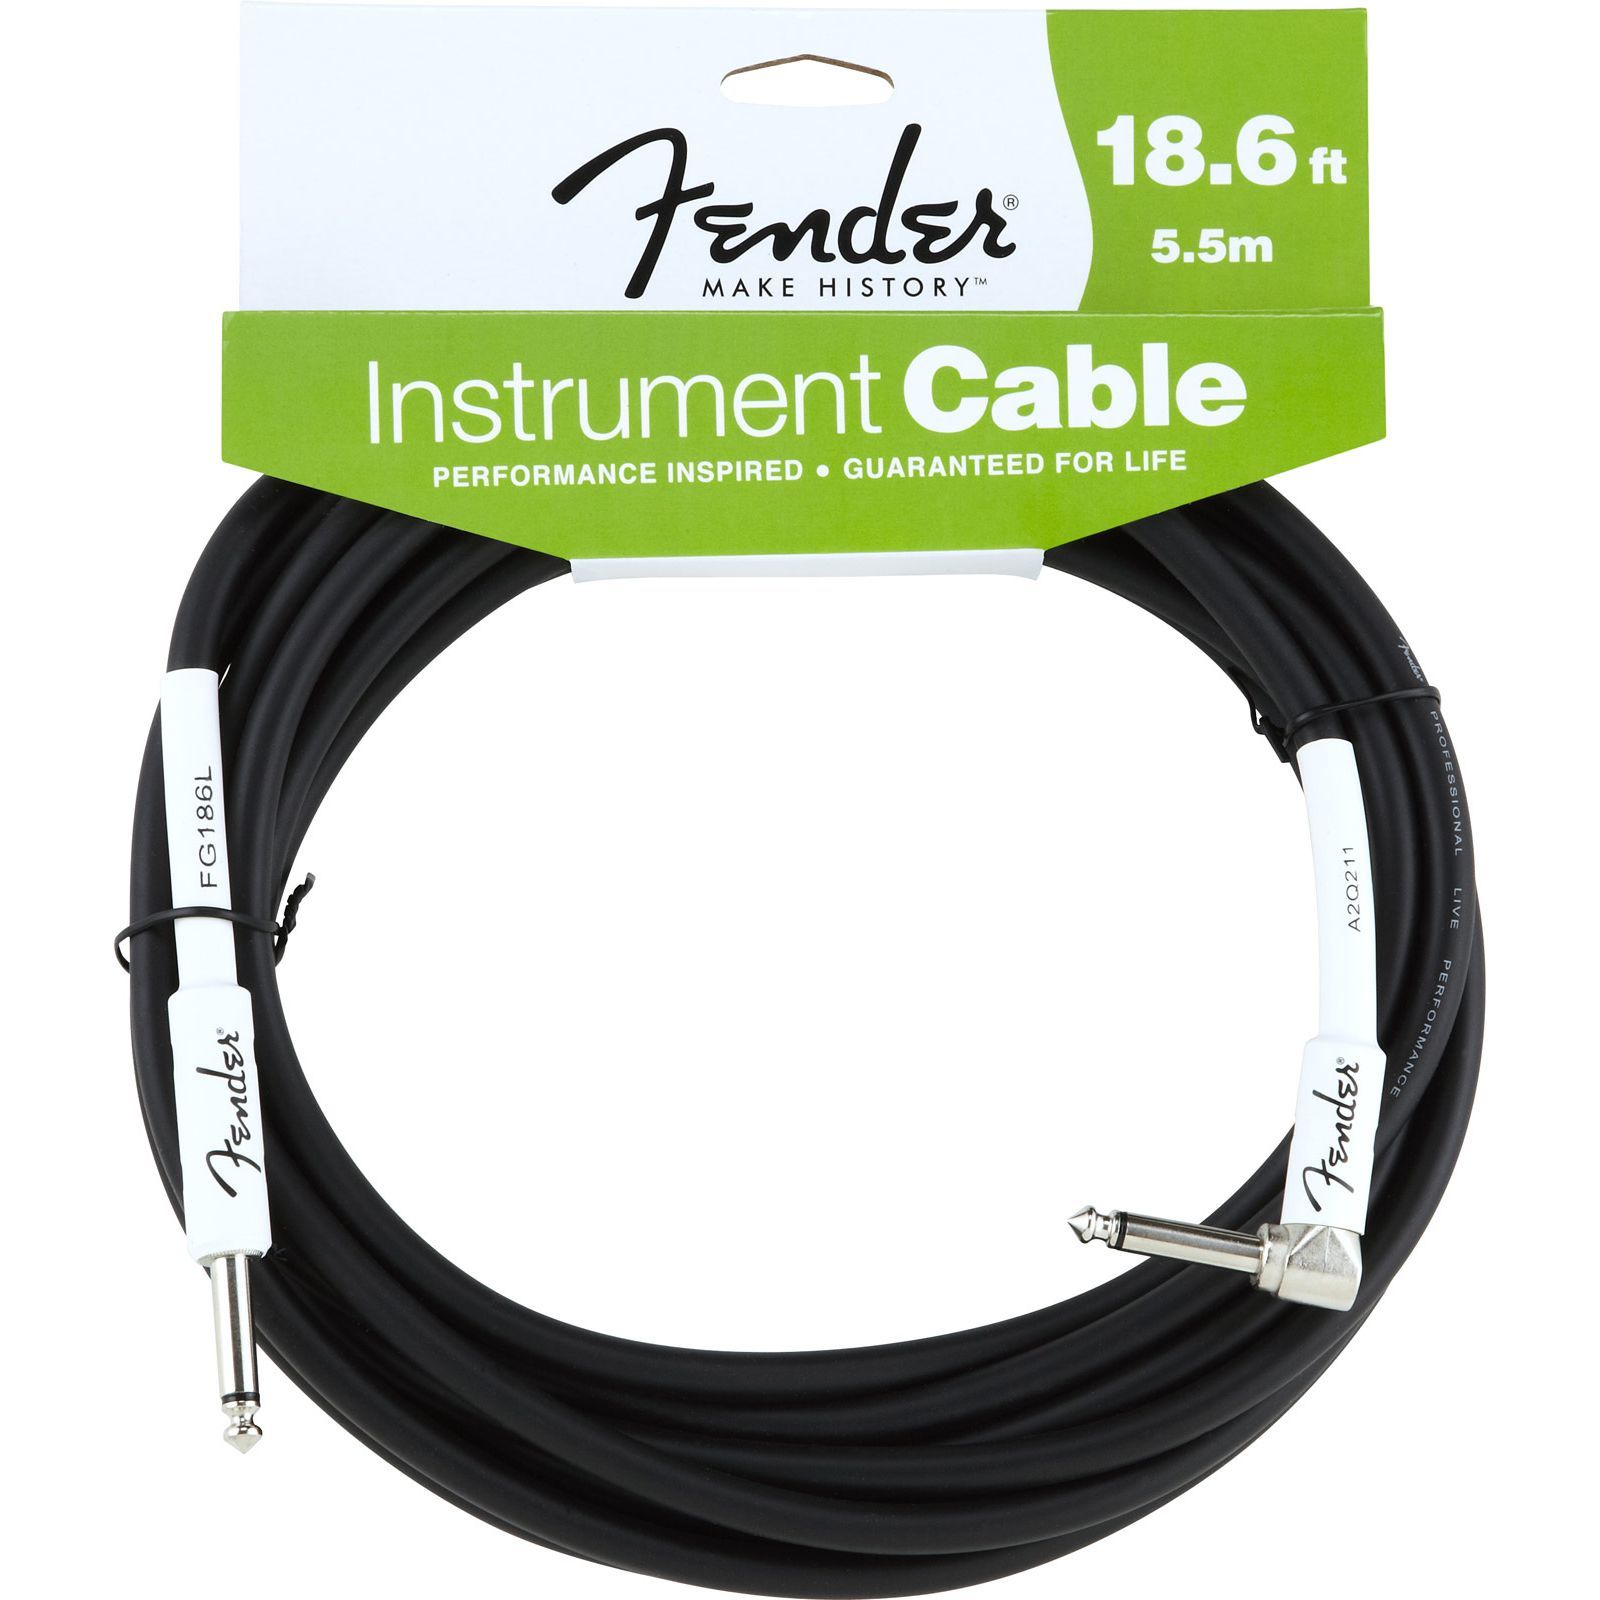 Fender Performance Cable 5,5m BLK Black, Kli/WKli Produktbild